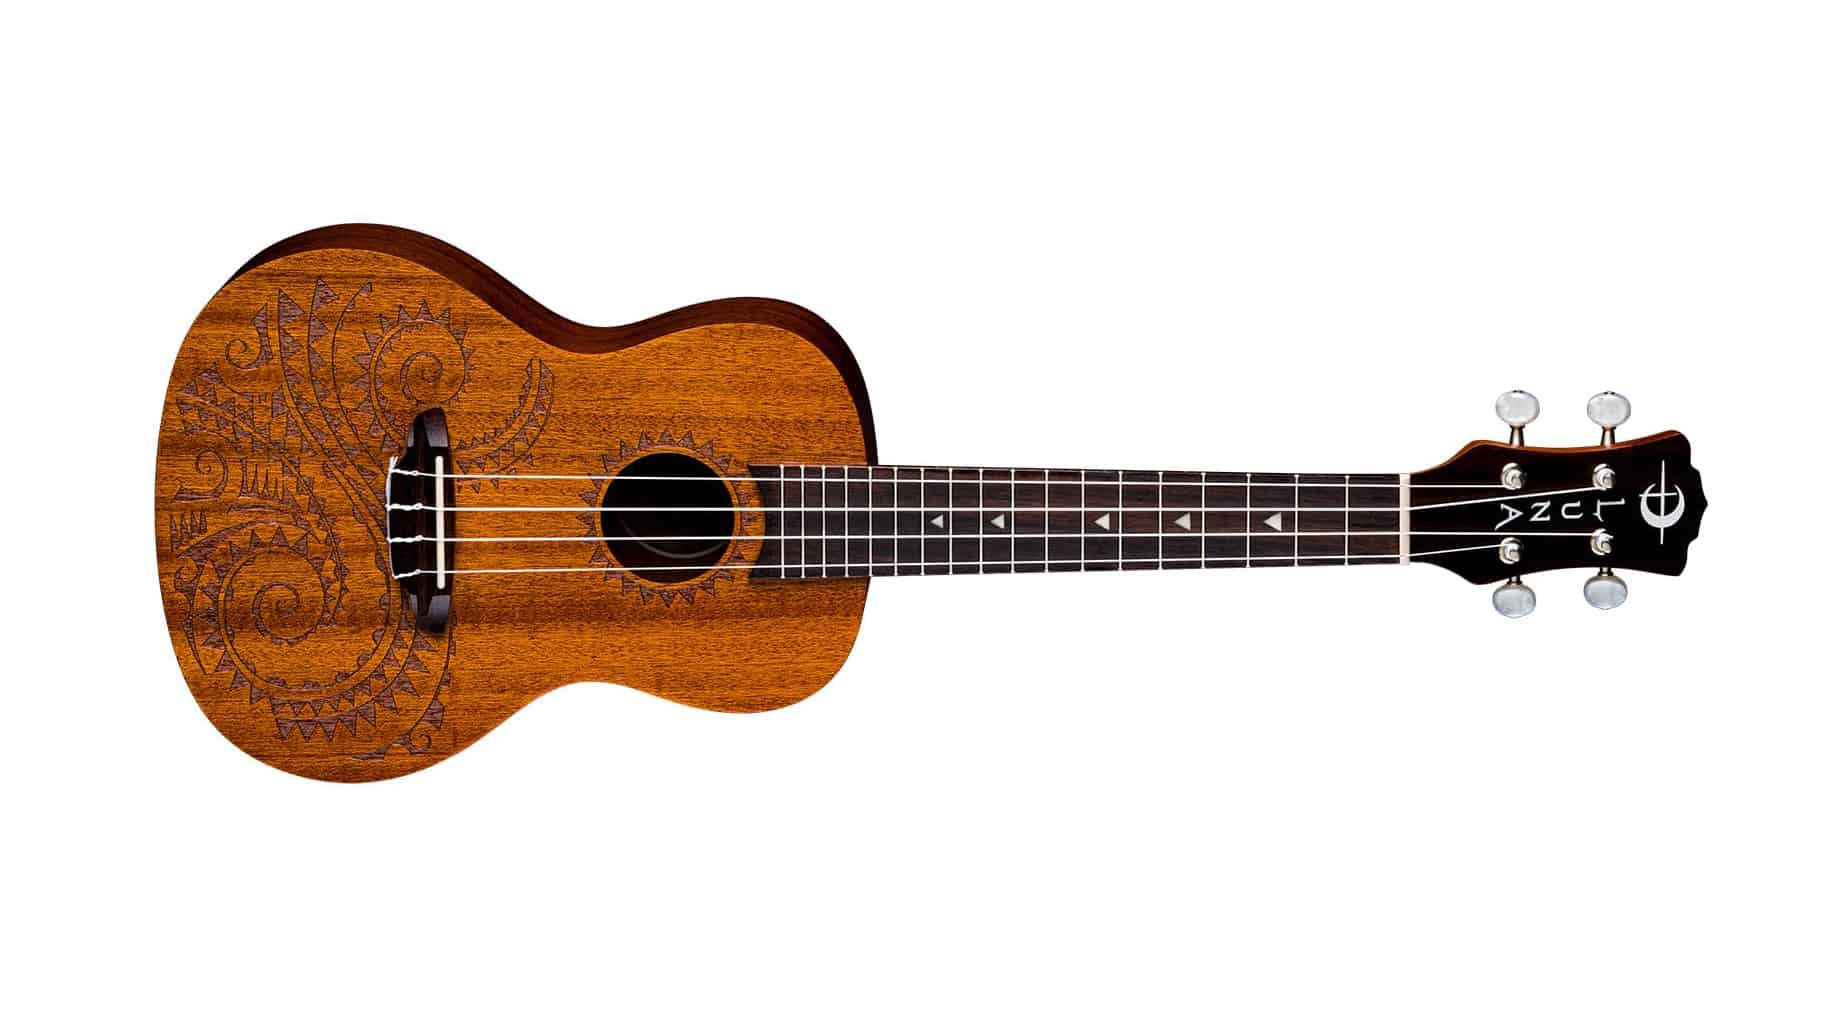 Luna Tattoo Ukulele Review